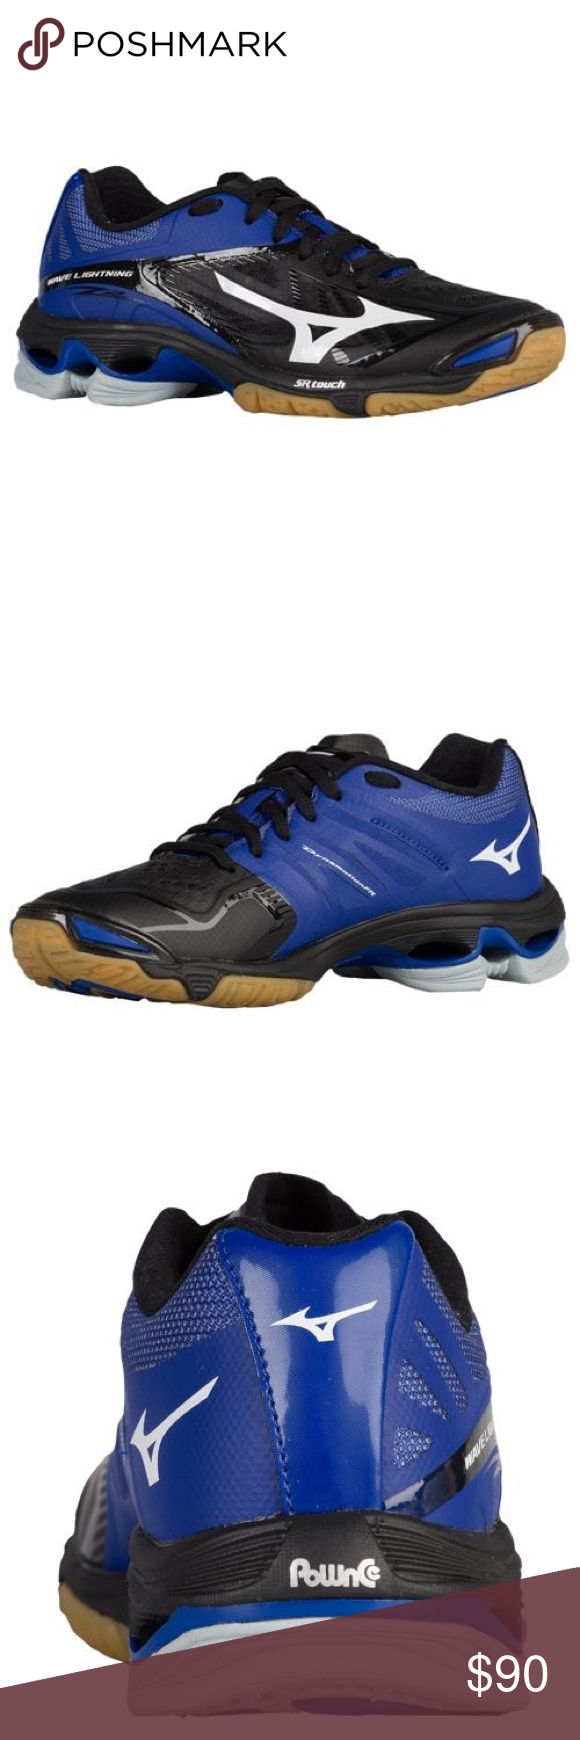 Women S Volleyball Shoe Mizuno Wave Lightning Z2 Bring Some Electricity To The Court With These High Flying Vo Volleyball Shoes Women Volleyball Mizuno Shoes